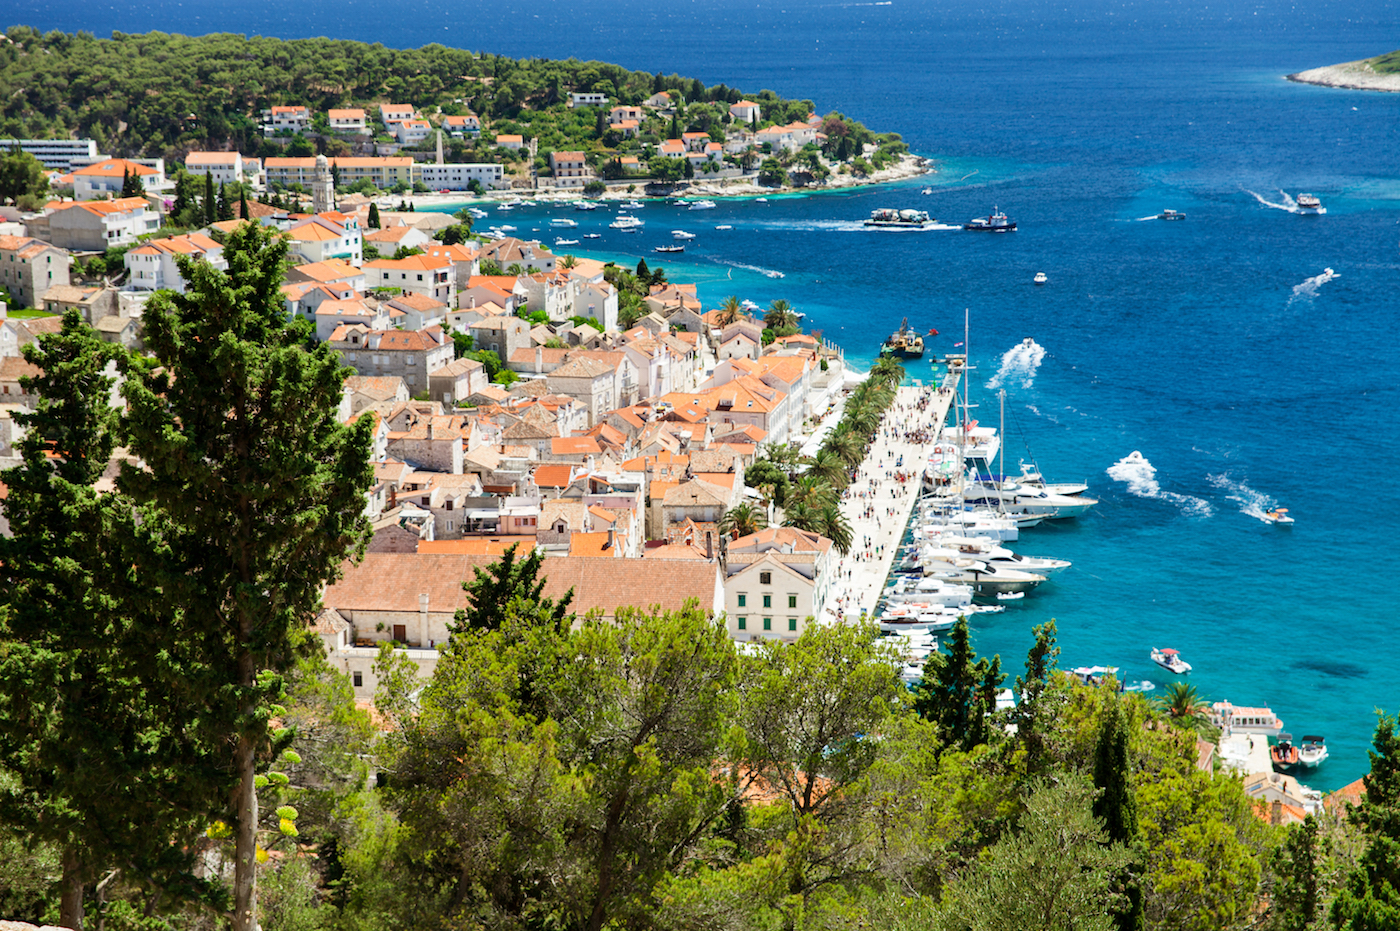 Hvar Town Croatia Islands Best Islands Europe Nowhere & Everywhere Lis Lisande Dingjan Environmentalism Sustainable Eco Travel